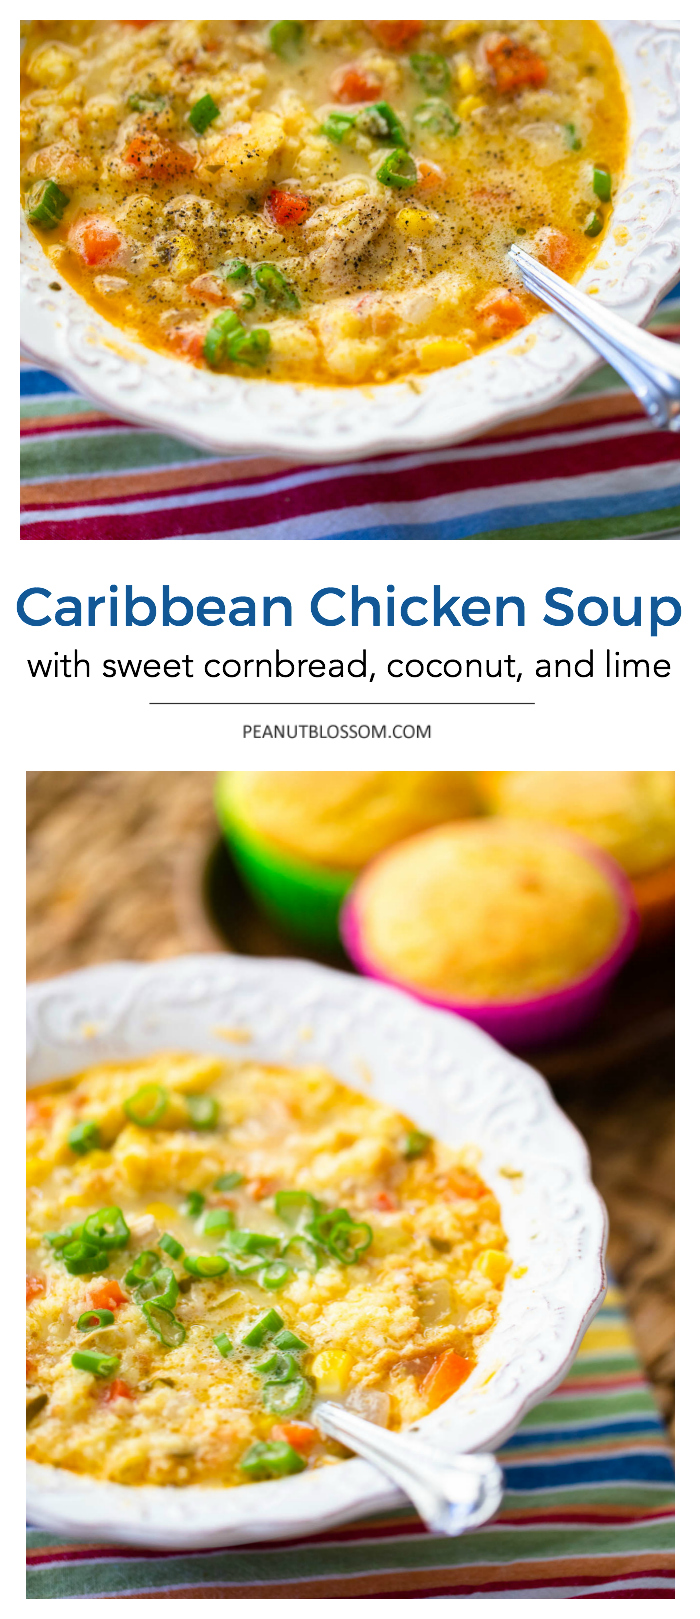 Caribbean chicken soup with sweet cornbread, coconut, and lime juice